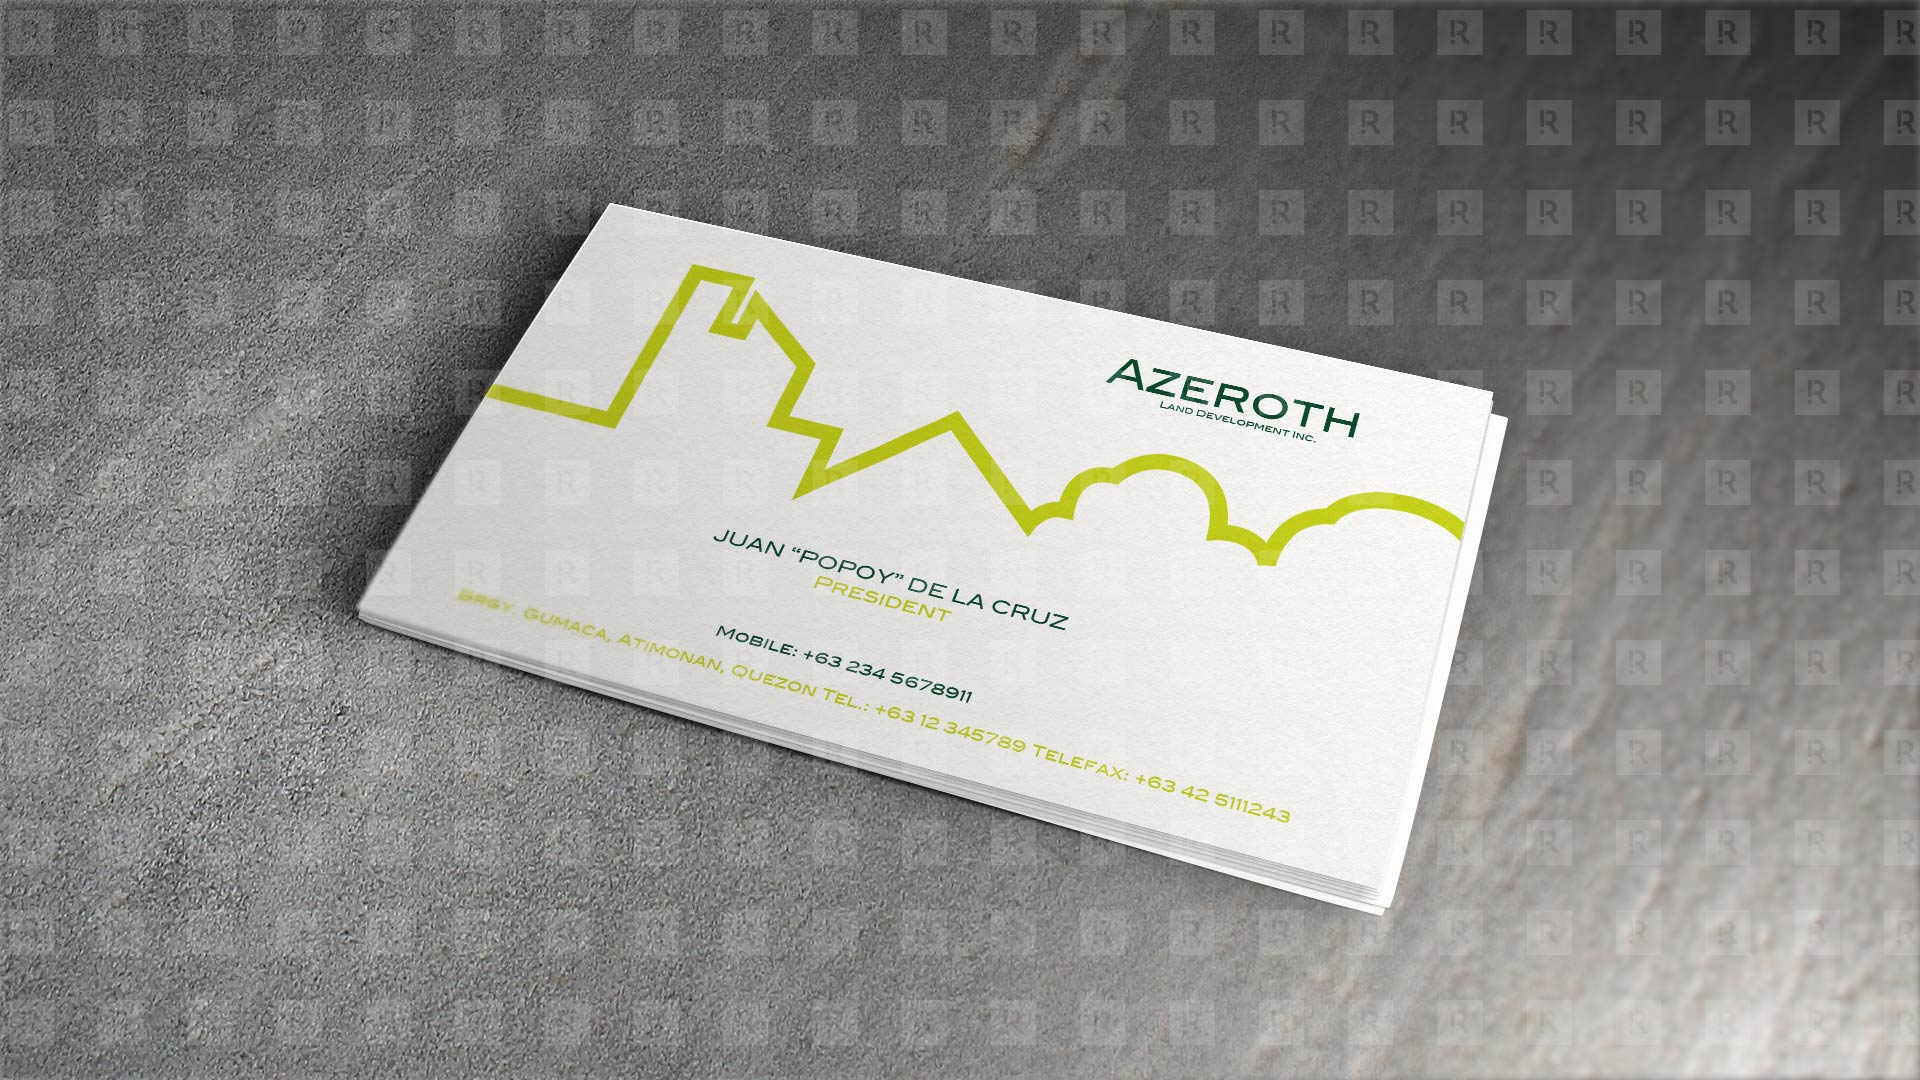 Azeroth Land Development Inc. calling card design